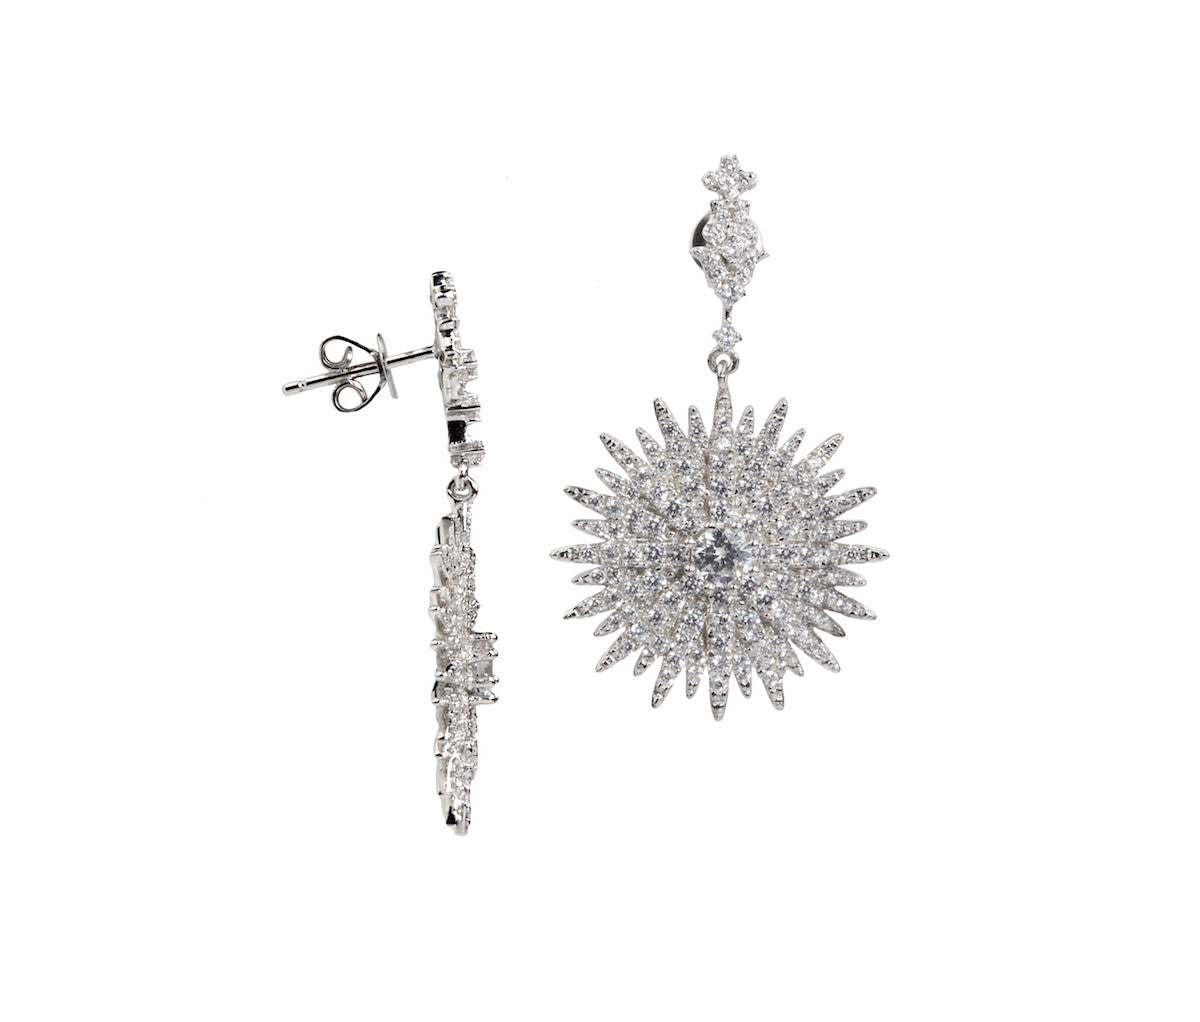 Silver Dazzle Explosion Earrings